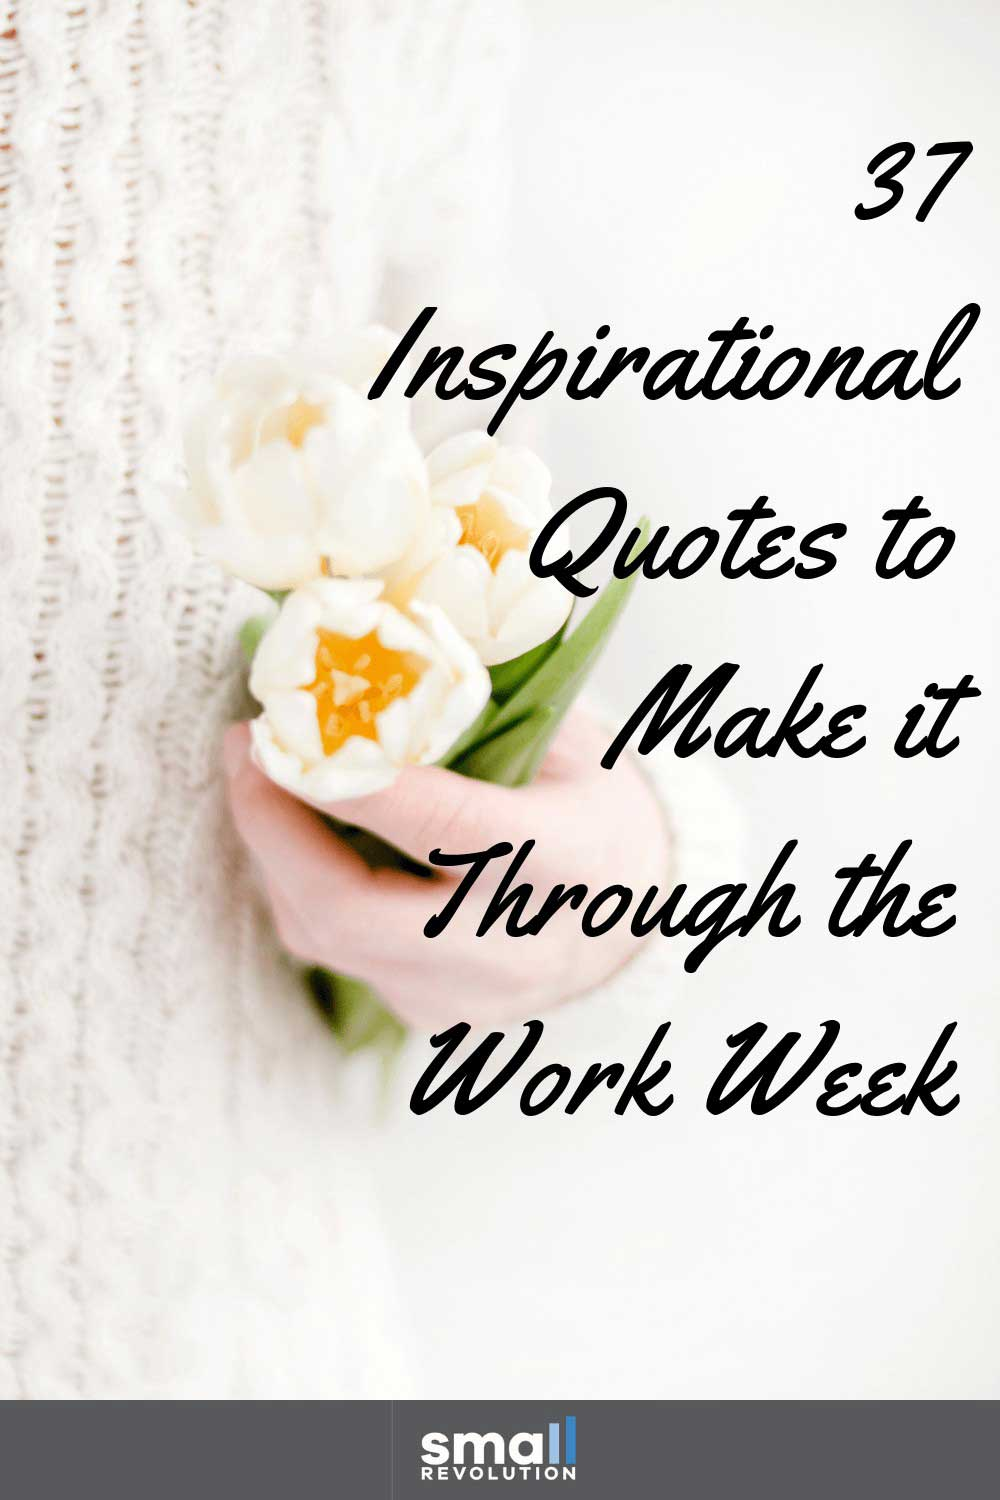 37 Inspirational quotes to make it throught the work week